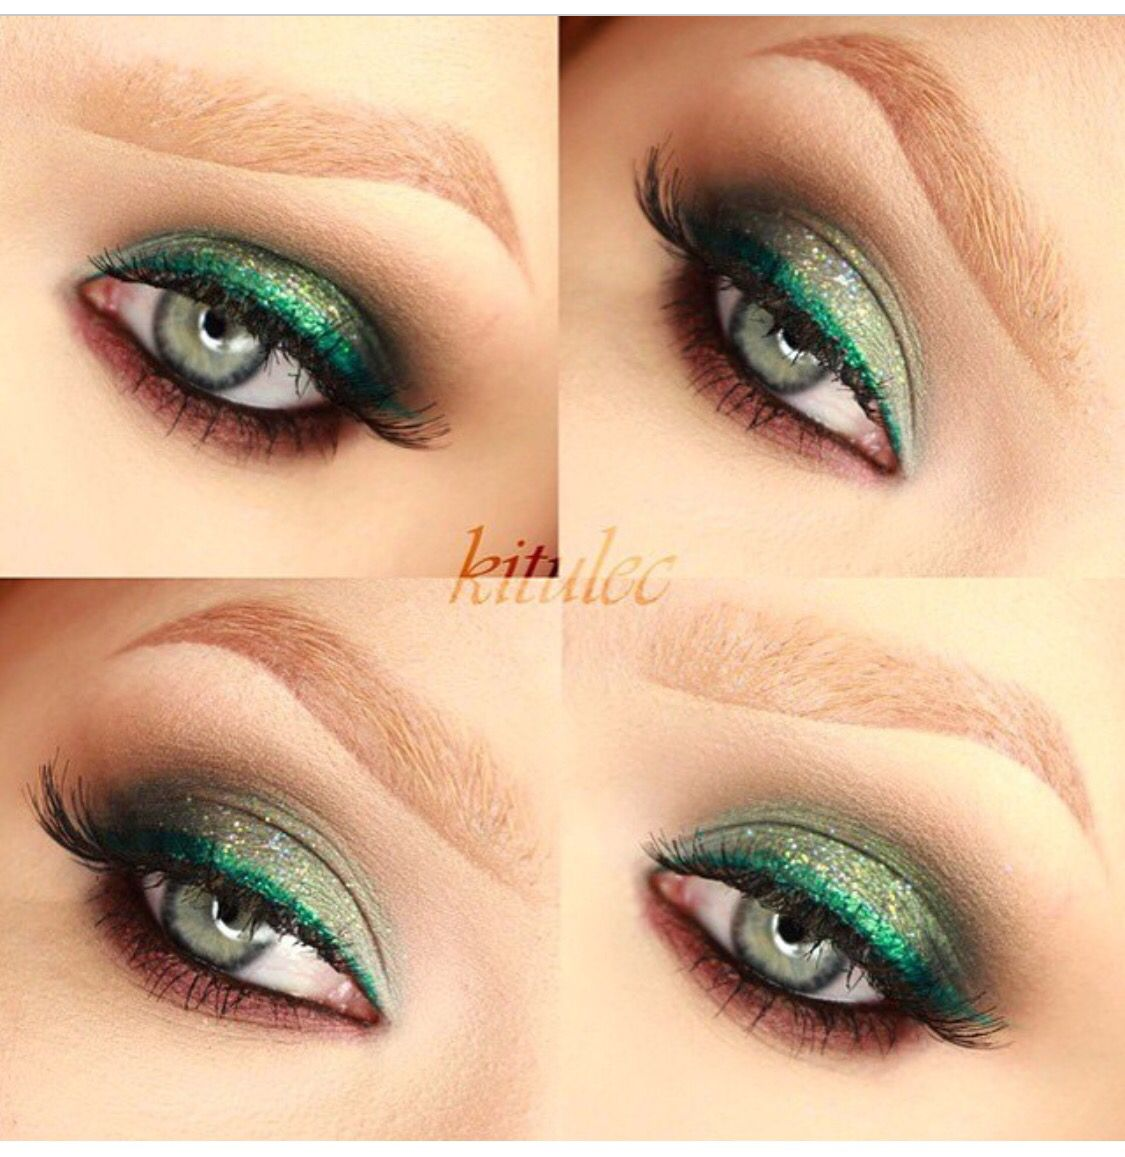 Pin by Jaeda Michelle on THE COLOR Green Holiday looks